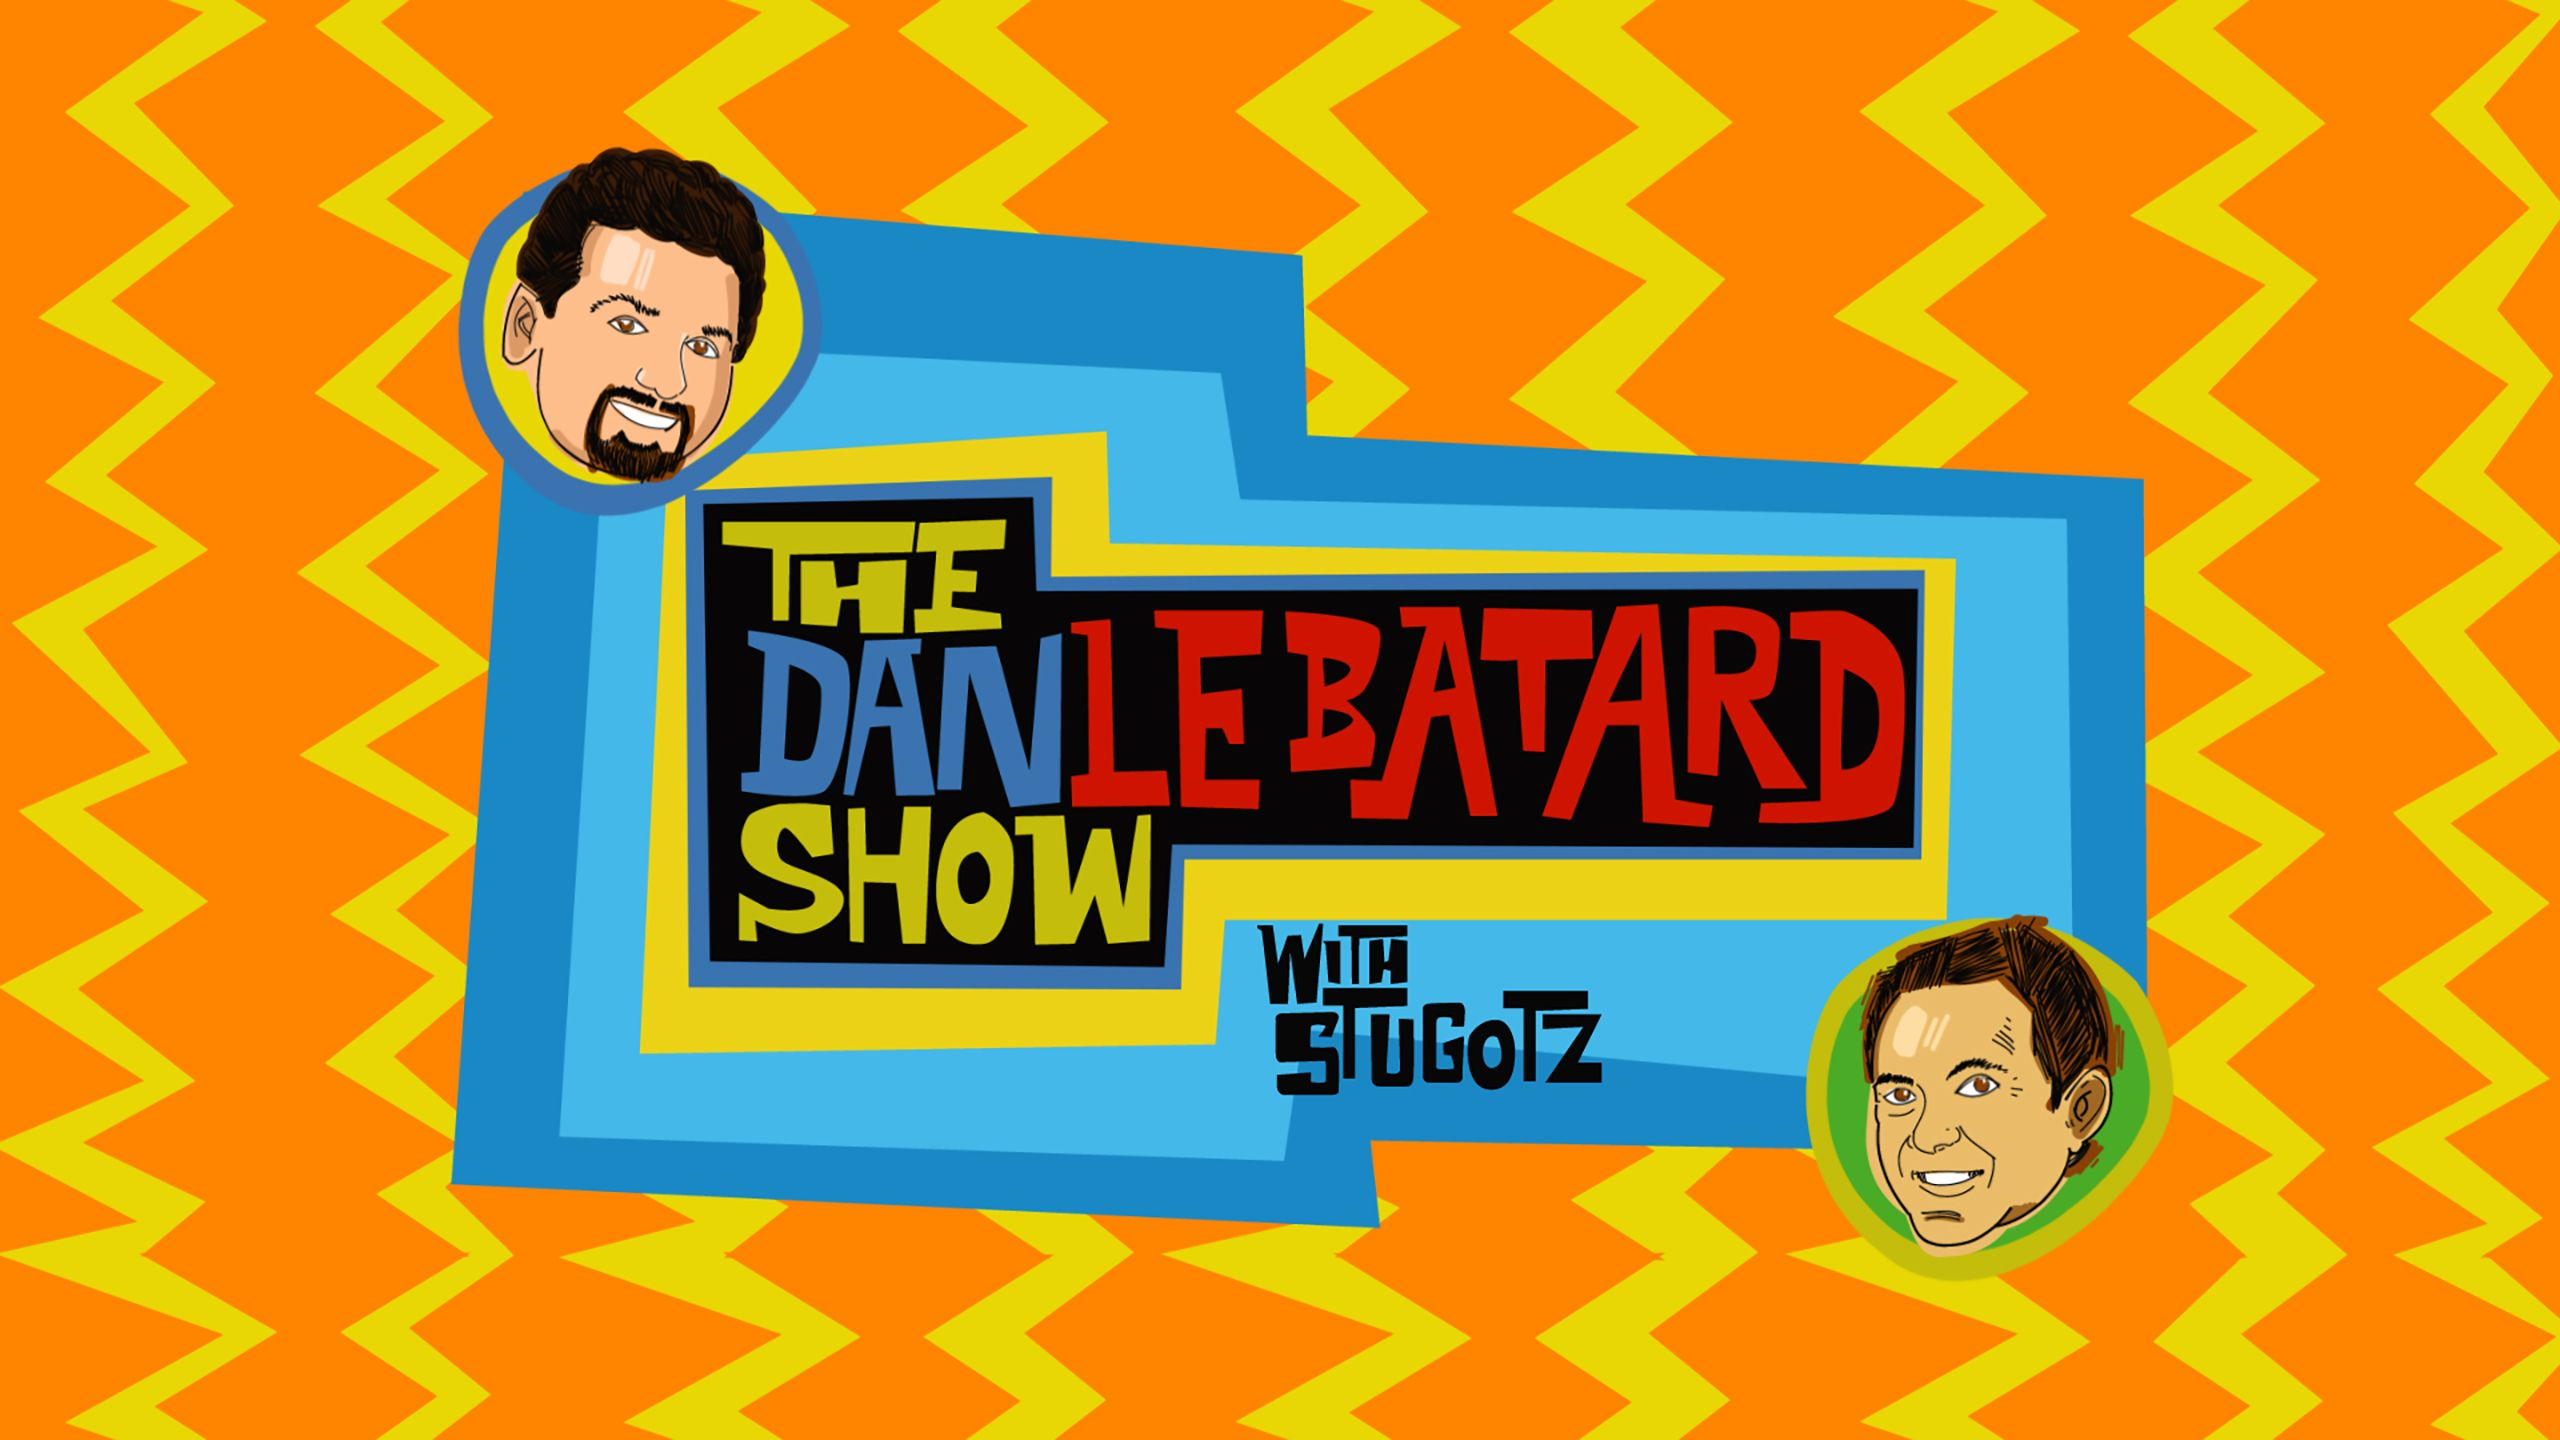 Tue, 10/17 - The Dan Le Batard Show with Stugotz Presented by Progressive